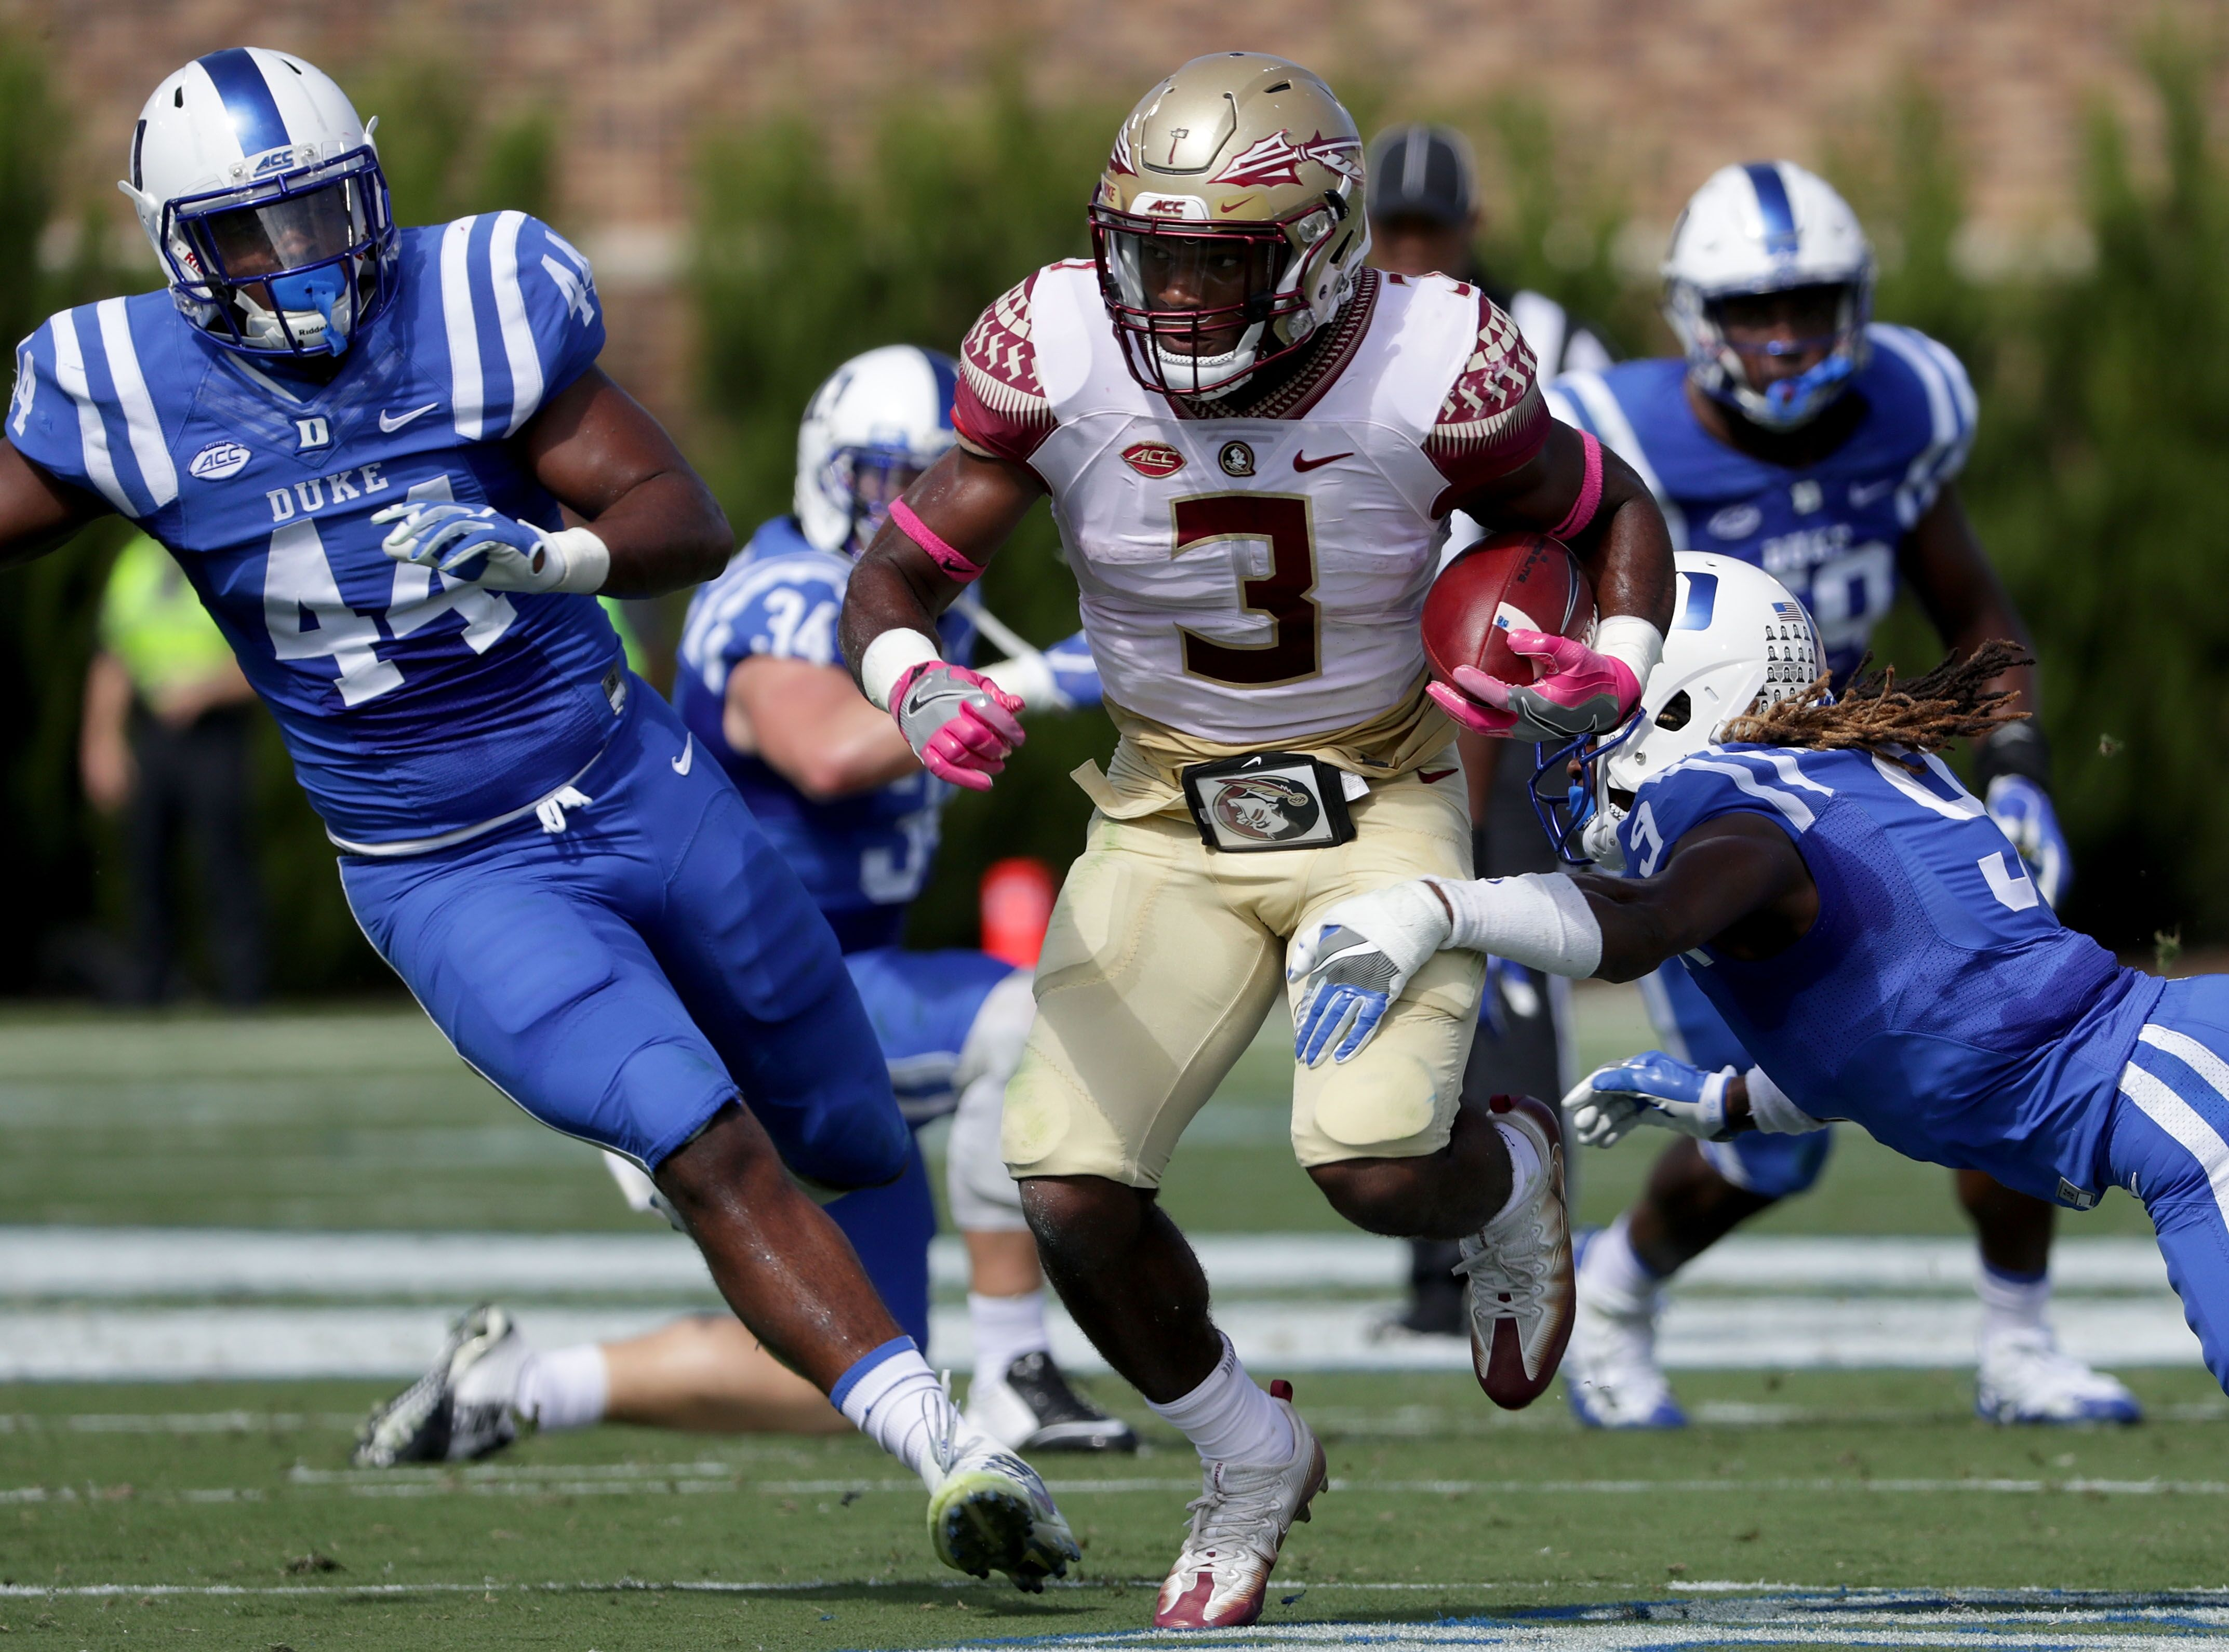 Fsu Football Fans React To Noles Ugly Win Over Duke